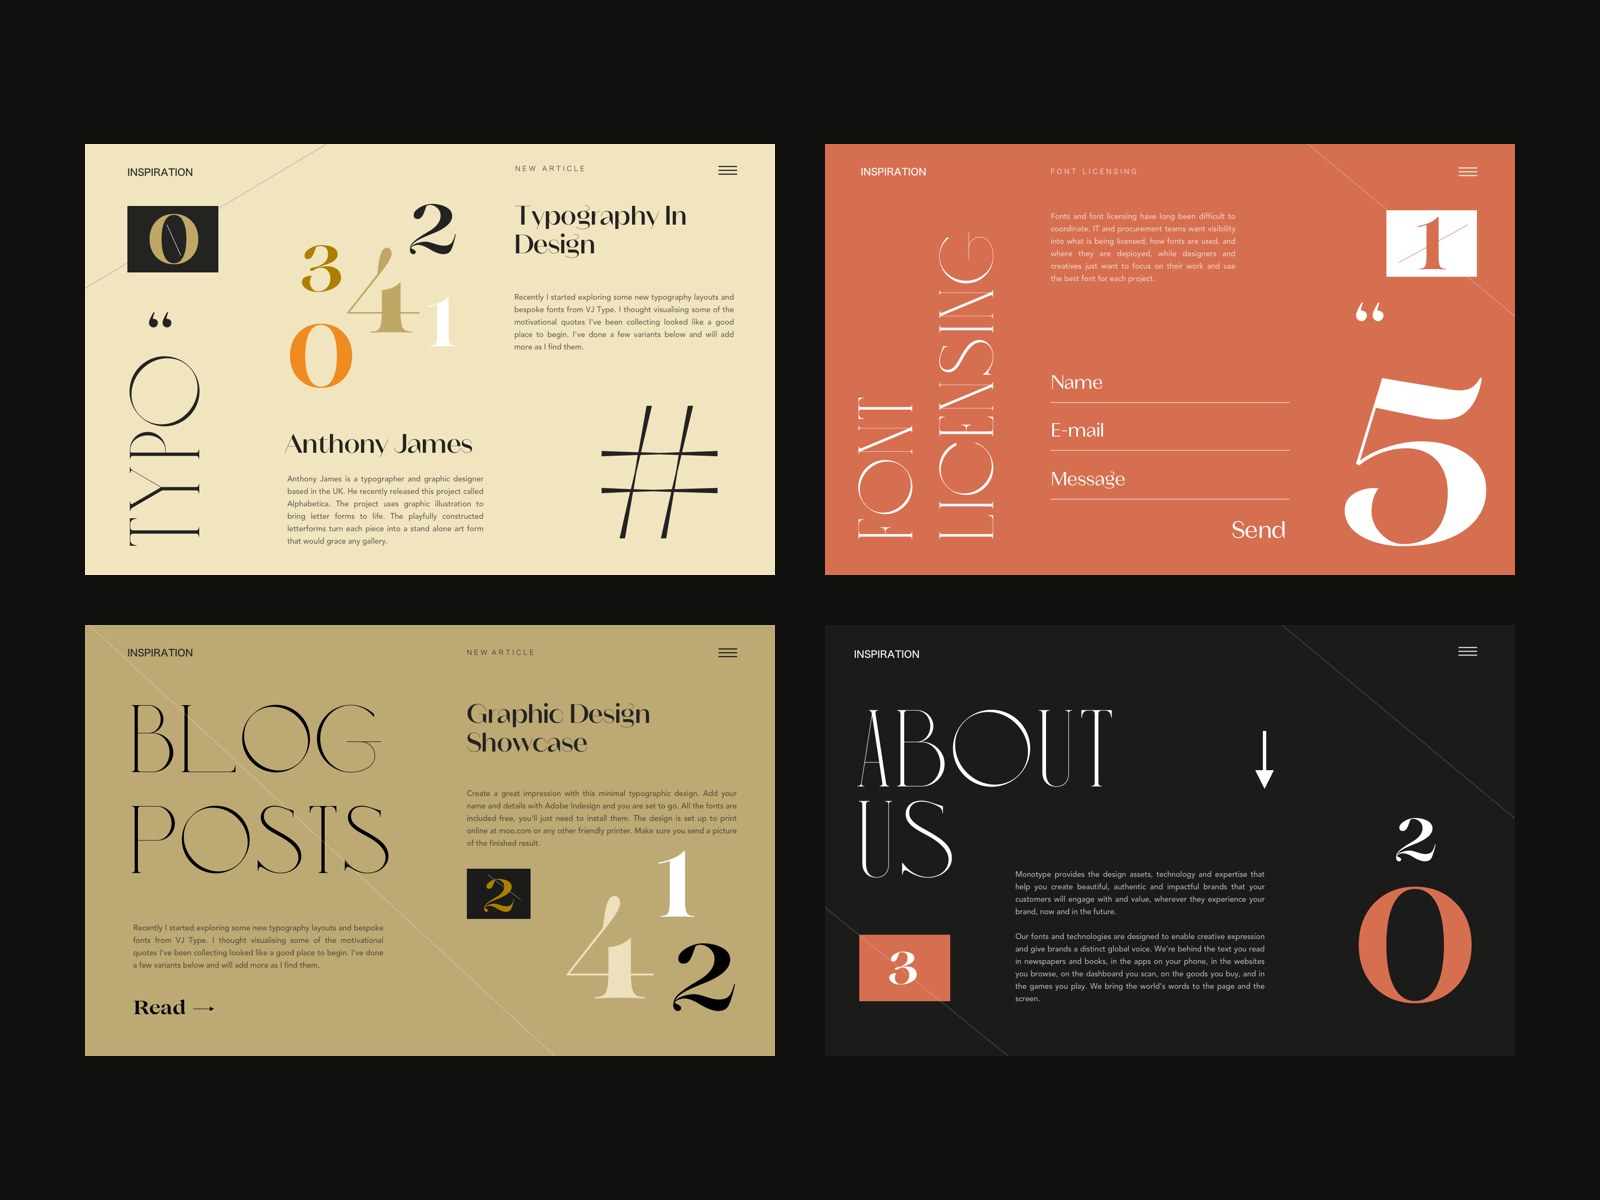 Choosing typography for web design: 5 things you need to consider |  Dribbble Design Blog